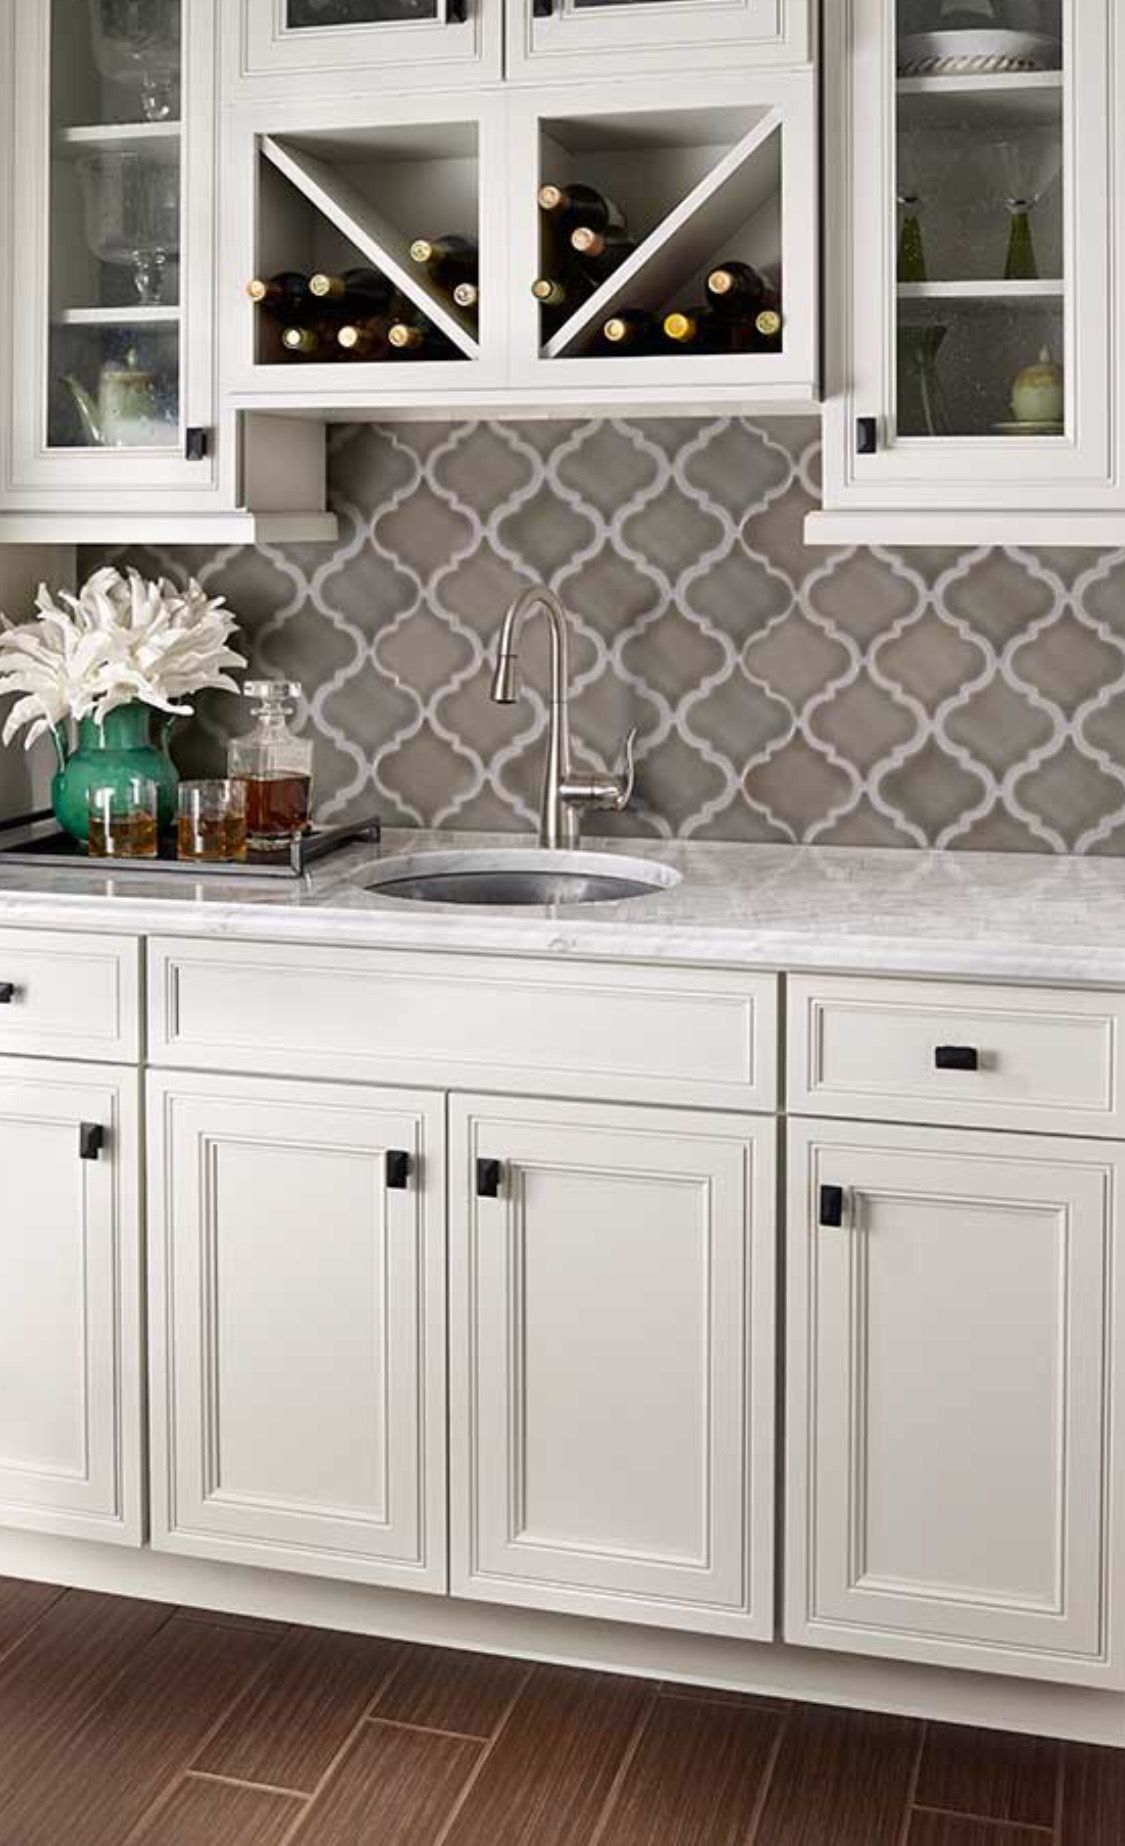 Crackle Paint Kitchen Cabinets Arabesque Pattern With Crackle Finish Color Dove Grey